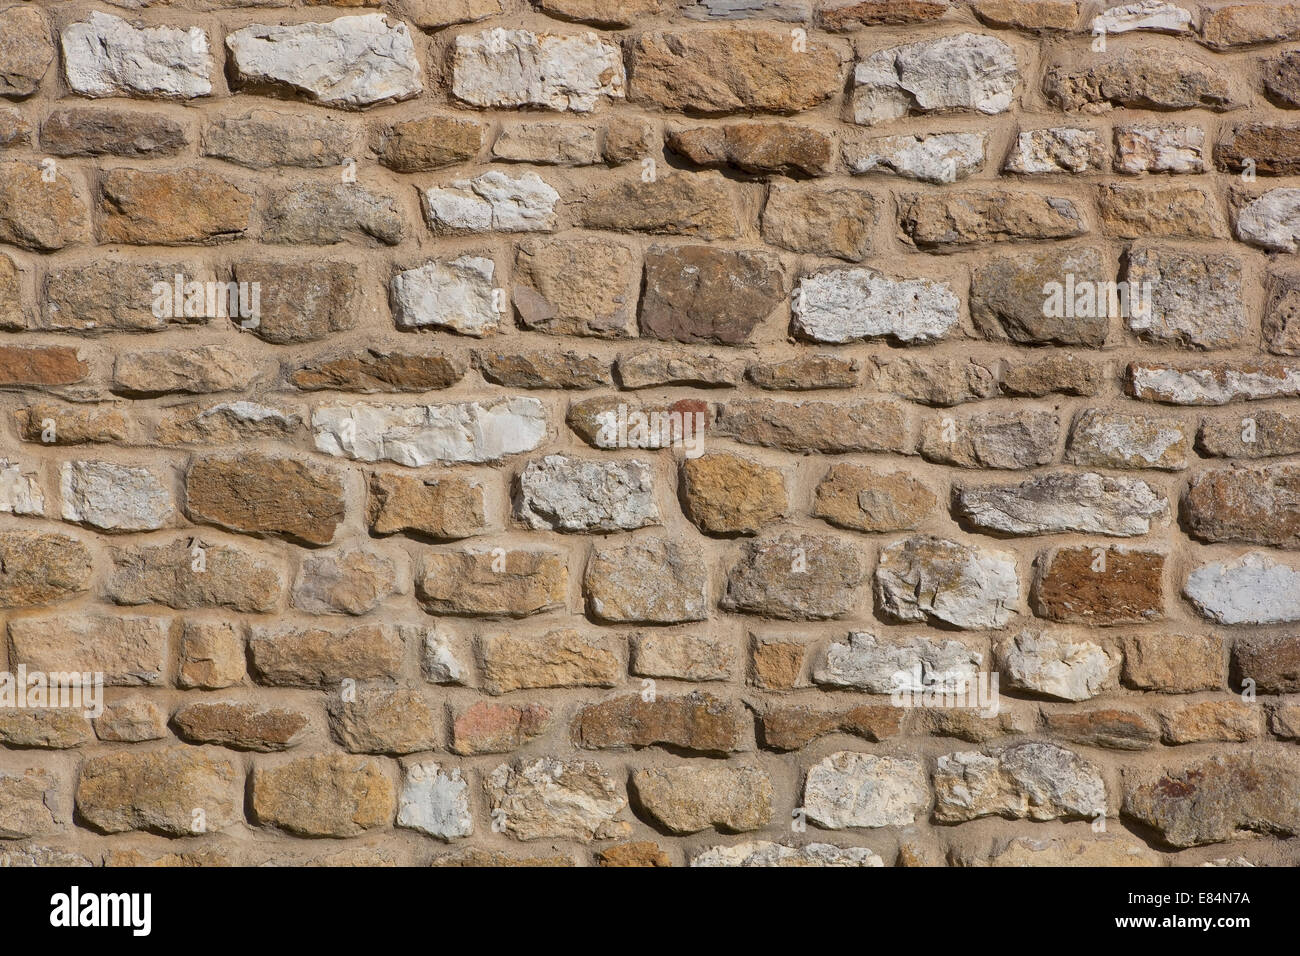 Architectural background pattern and textures of a natural stone wall bonded with mortar - Stock Image